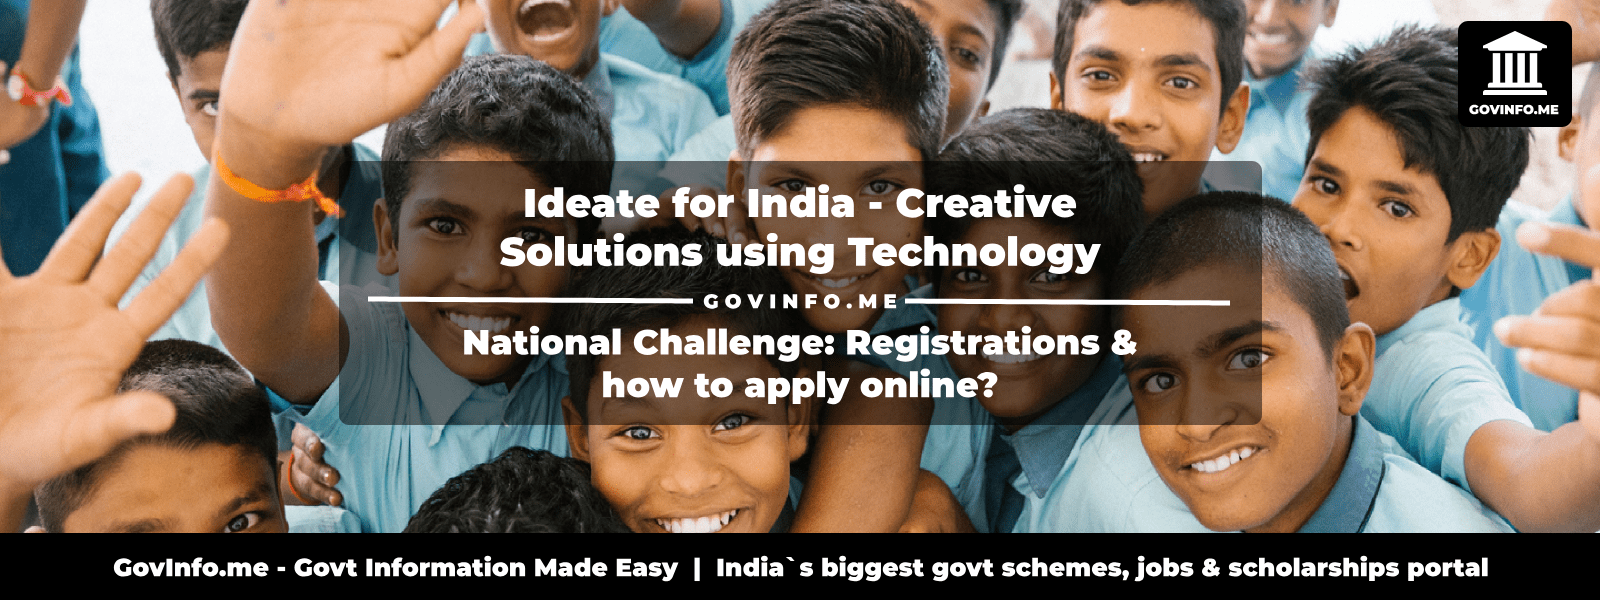 ideateforindia negd in - Ideate for India National Challenge